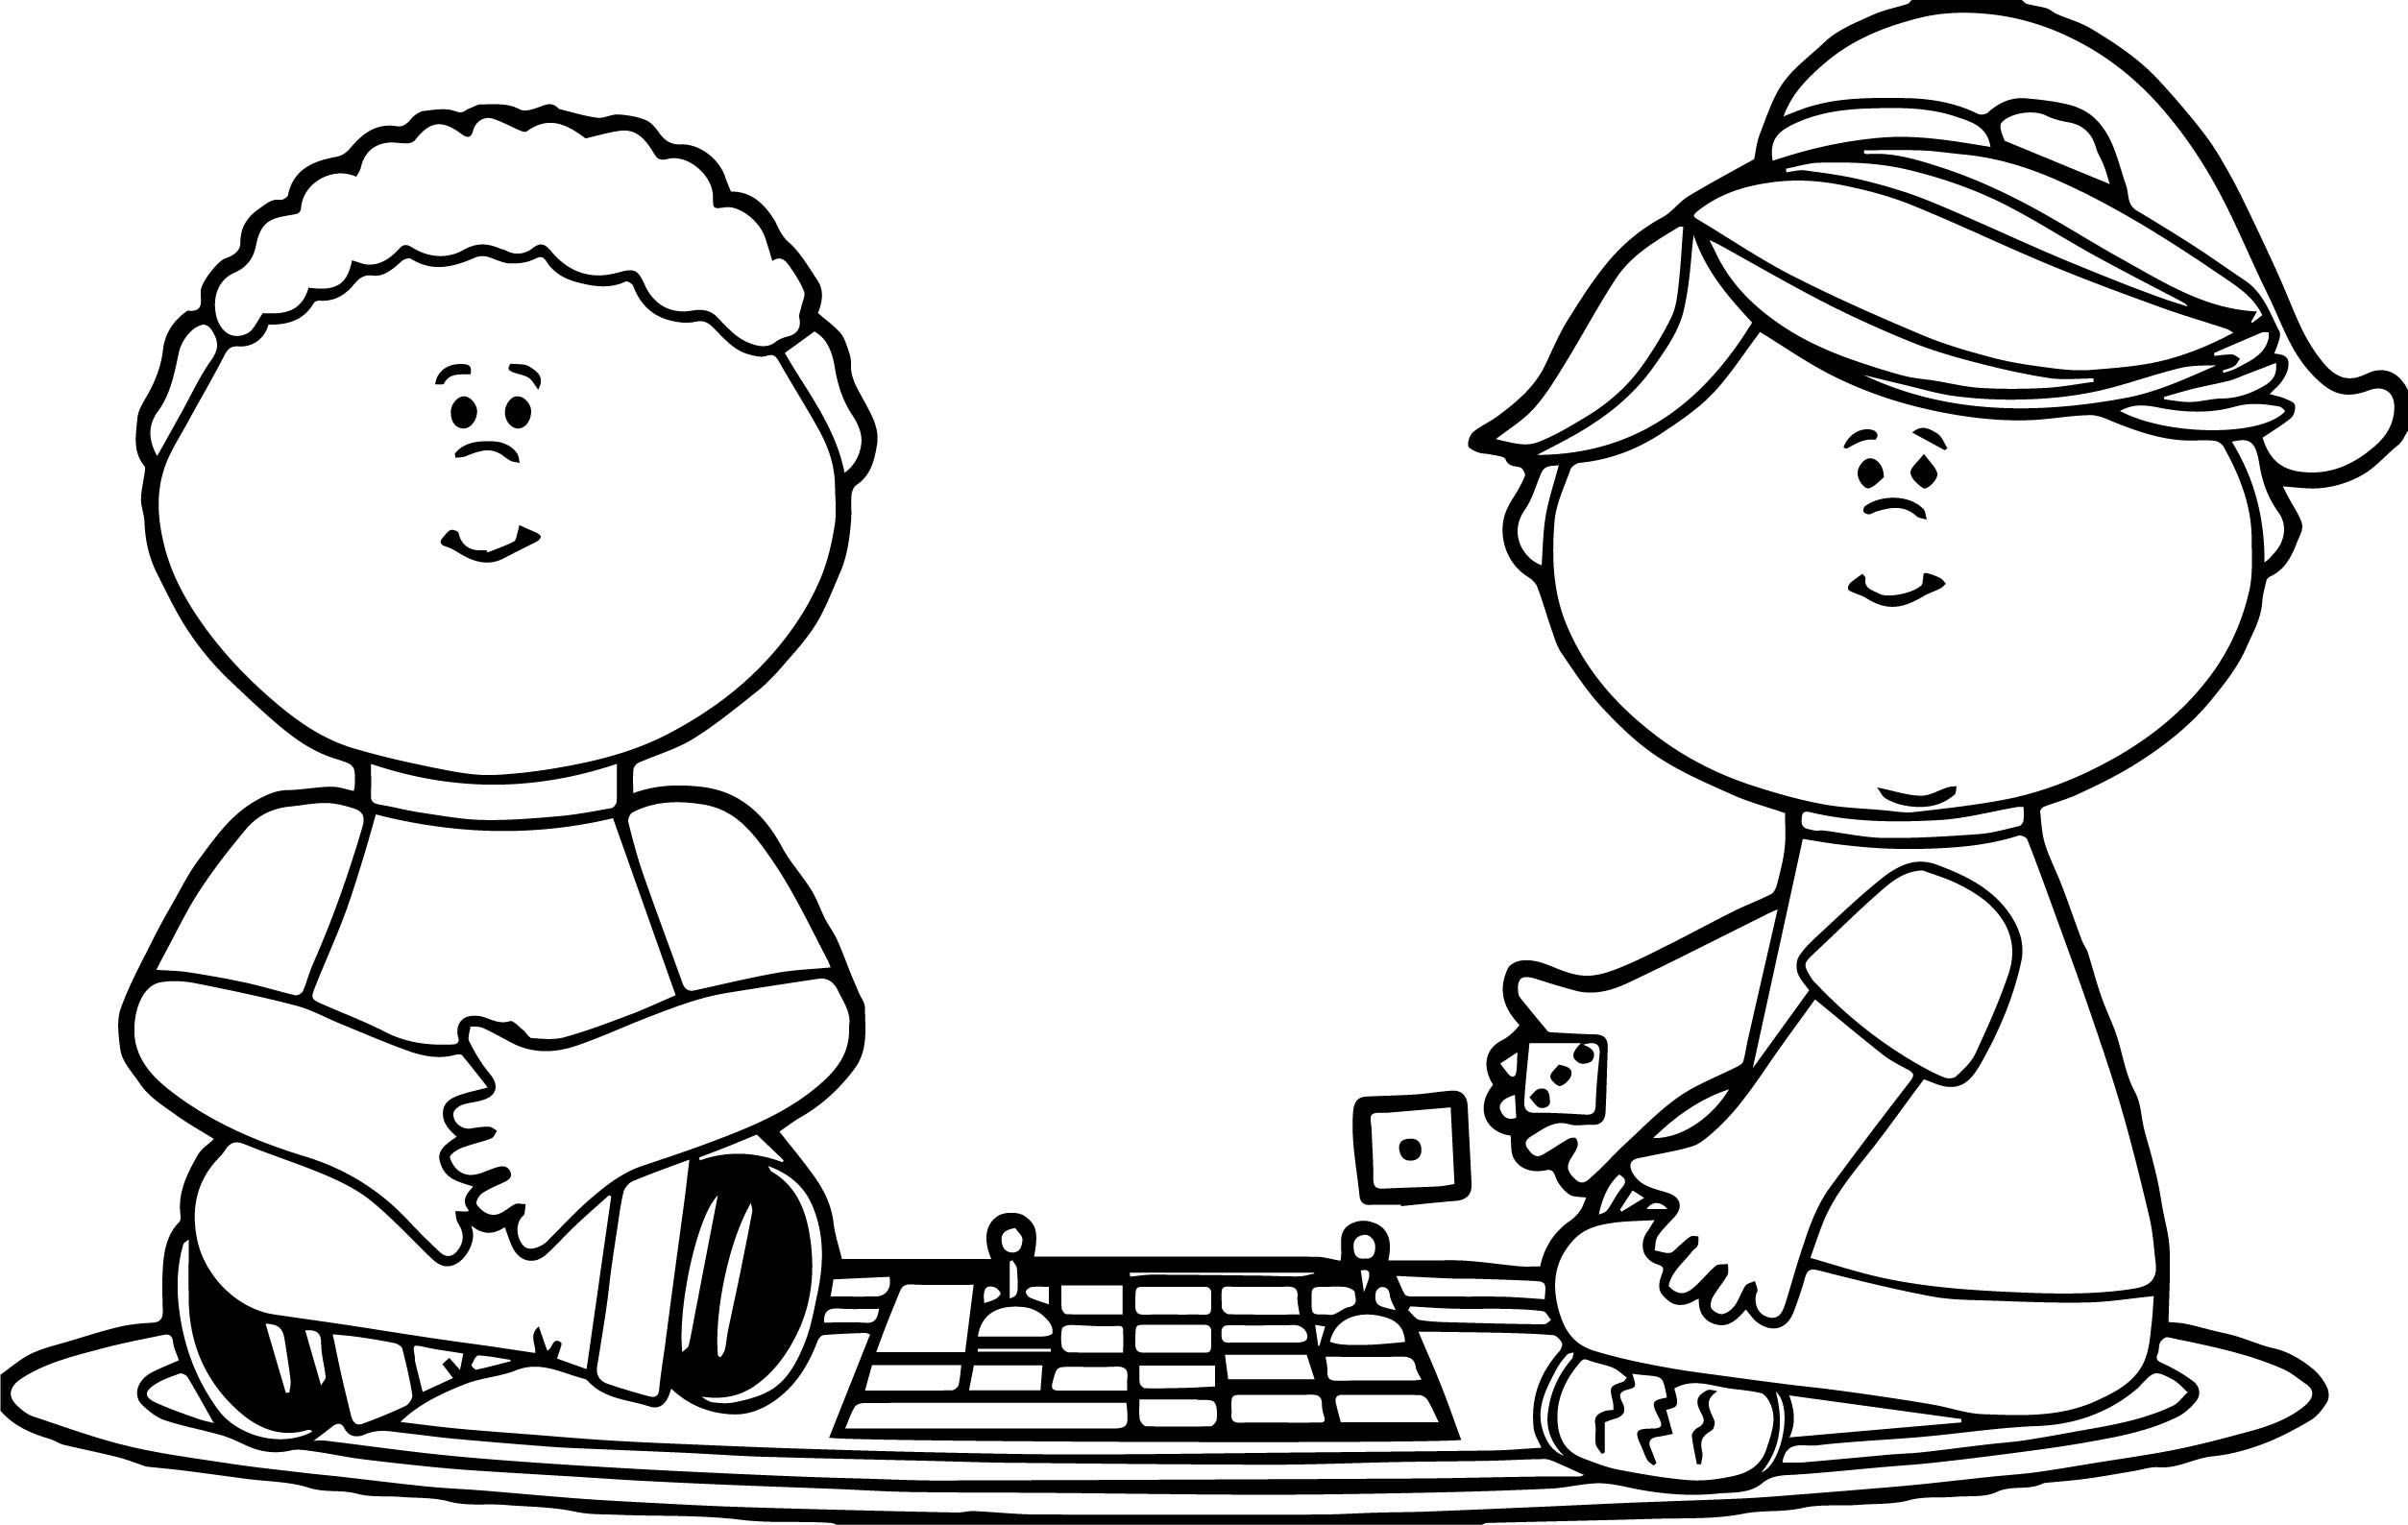 Cool Waiting Boy For Board Game Coloring Page Coloring Games For Kids Coloring Pages For Kids Coloring Pages